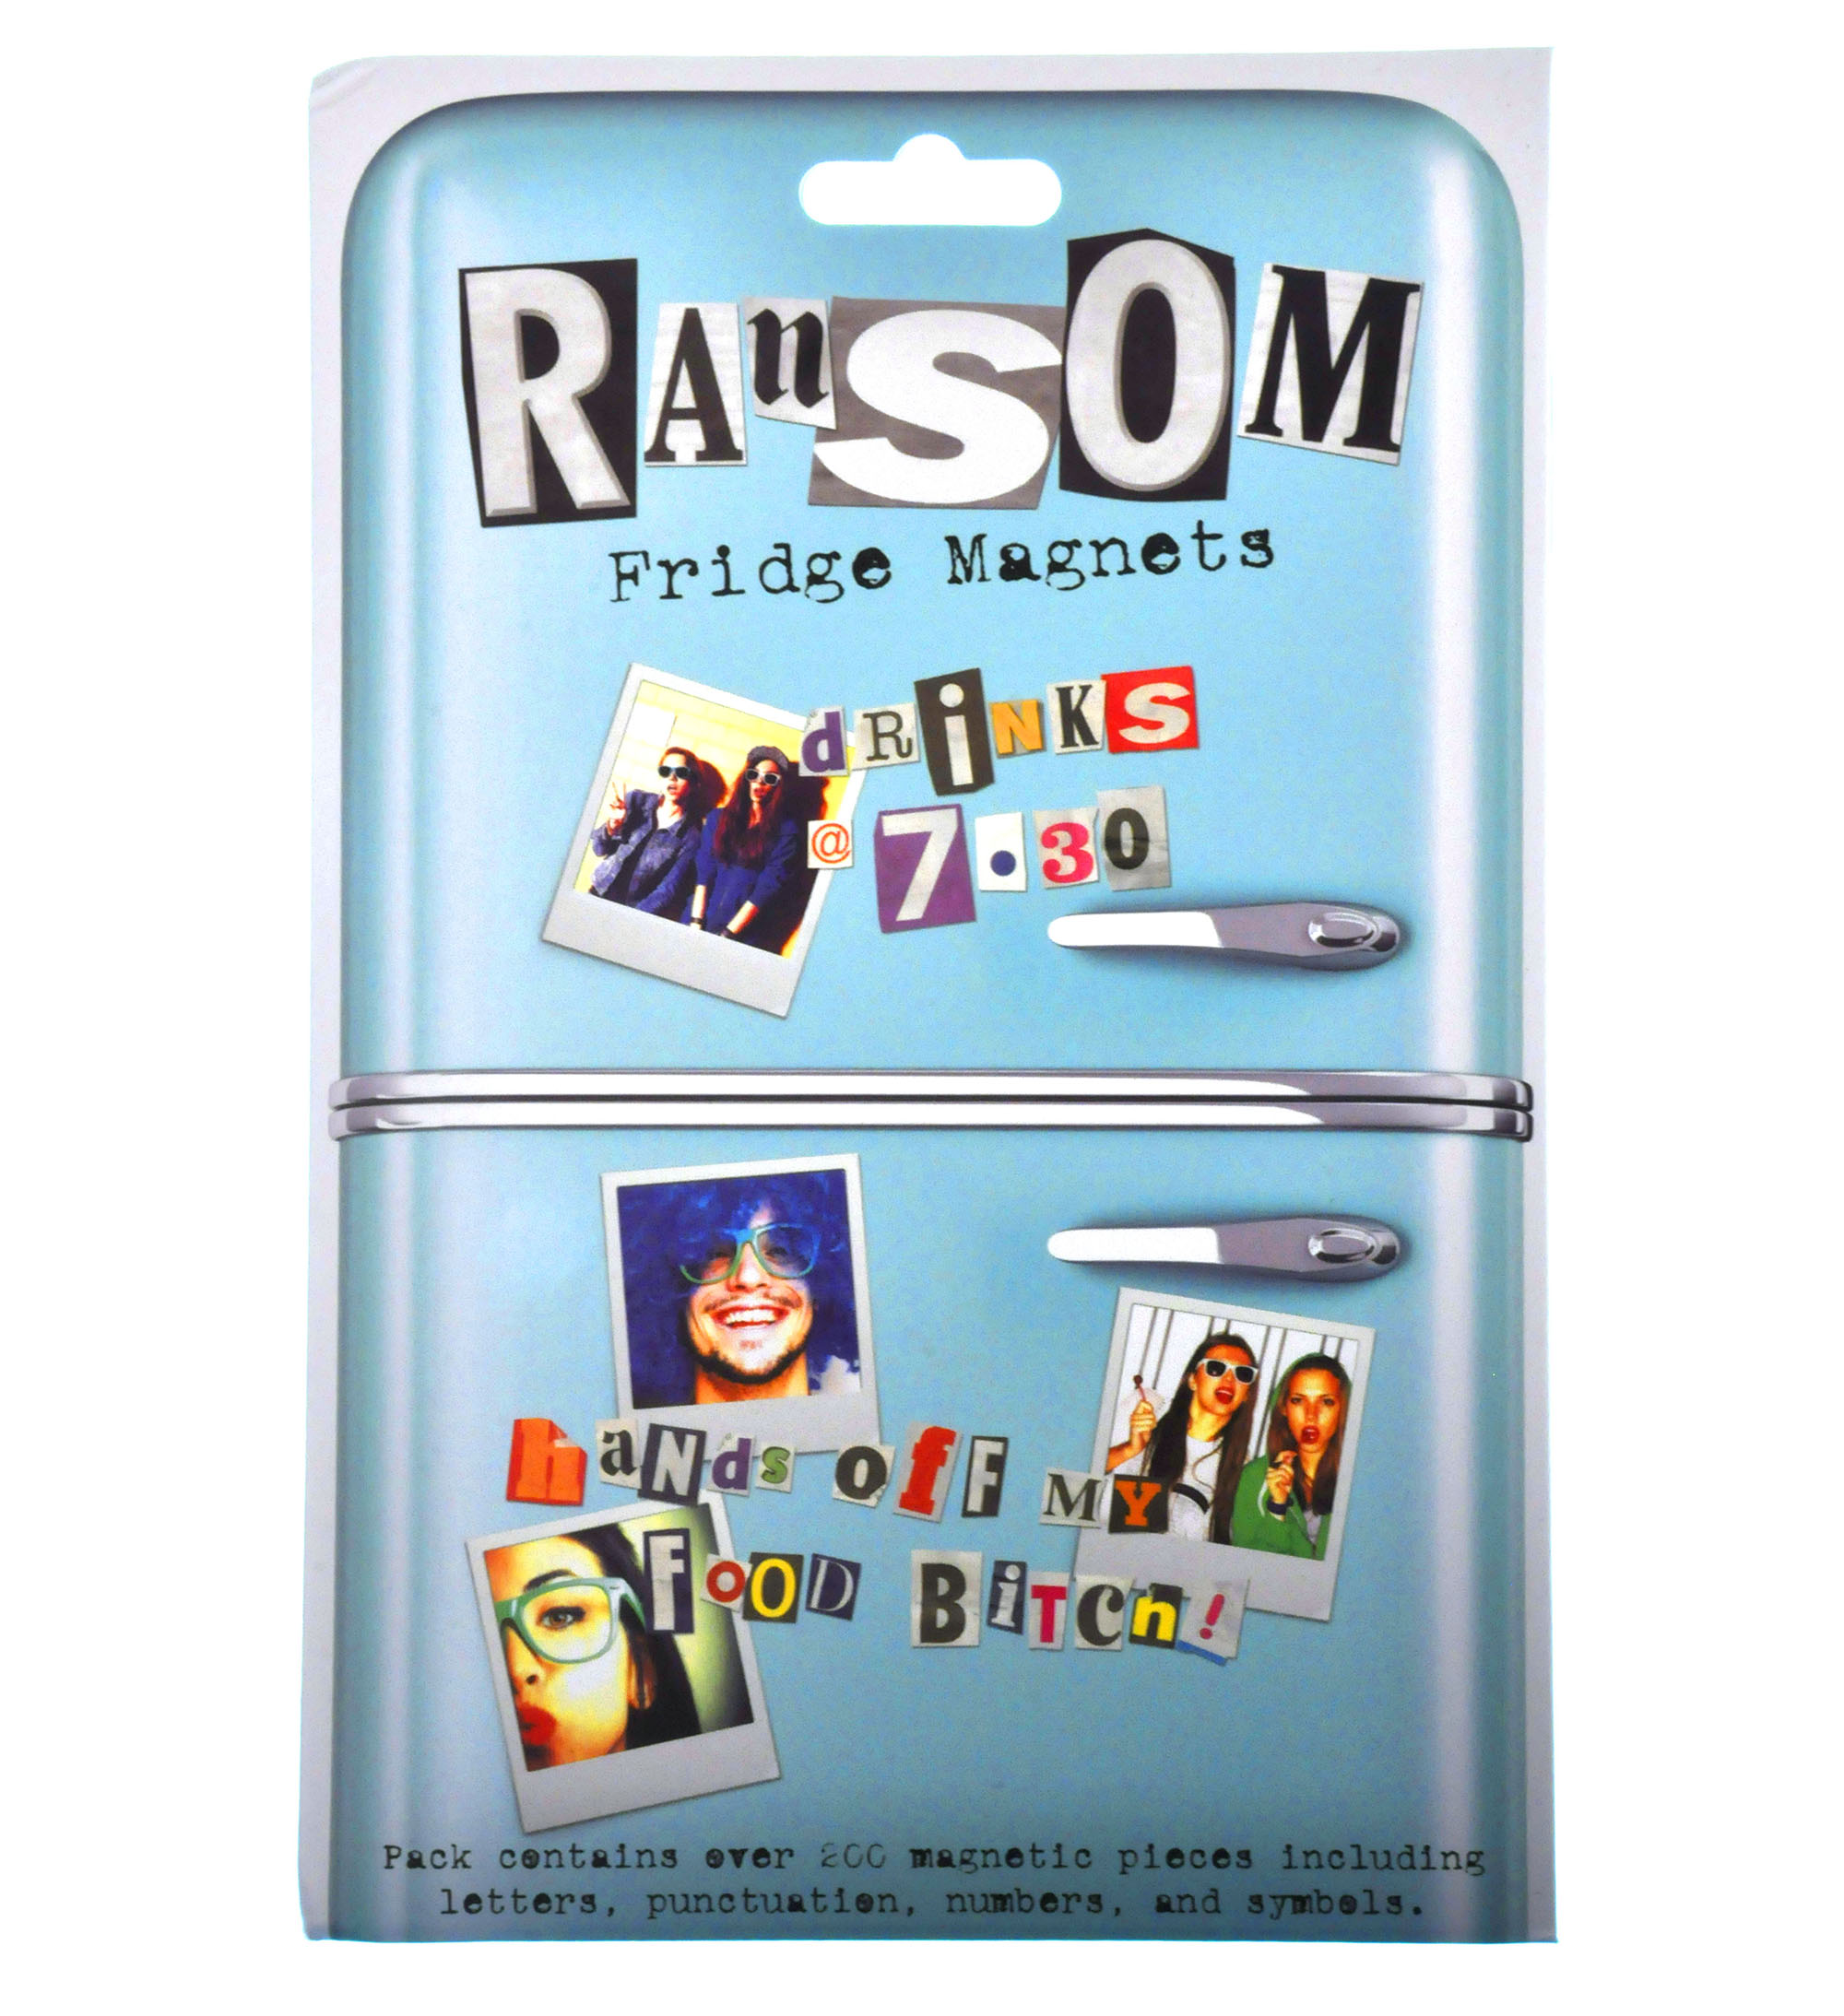 Stunning Ransom Fridge Magnet Set  Newspaper Cut Out Font Fridge Poetry  With Fetching Ransom Fridge Magnet Set  Newspaper Cut Out Font Fridge Poetry With Divine  Devonshire Gardens Glasgow Also Gifts For Gardening Enthusiasts In Addition Garden Slab Ideas And Garden Chair Seat Pads As Well As Ubud Hanging Gardens Additionally Zen Garden Seattle From Pinkcatshopcom With   Fetching Ransom Fridge Magnet Set  Newspaper Cut Out Font Fridge Poetry  With Divine Ransom Fridge Magnet Set  Newspaper Cut Out Font Fridge Poetry And Stunning  Devonshire Gardens Glasgow Also Gifts For Gardening Enthusiasts In Addition Garden Slab Ideas From Pinkcatshopcom